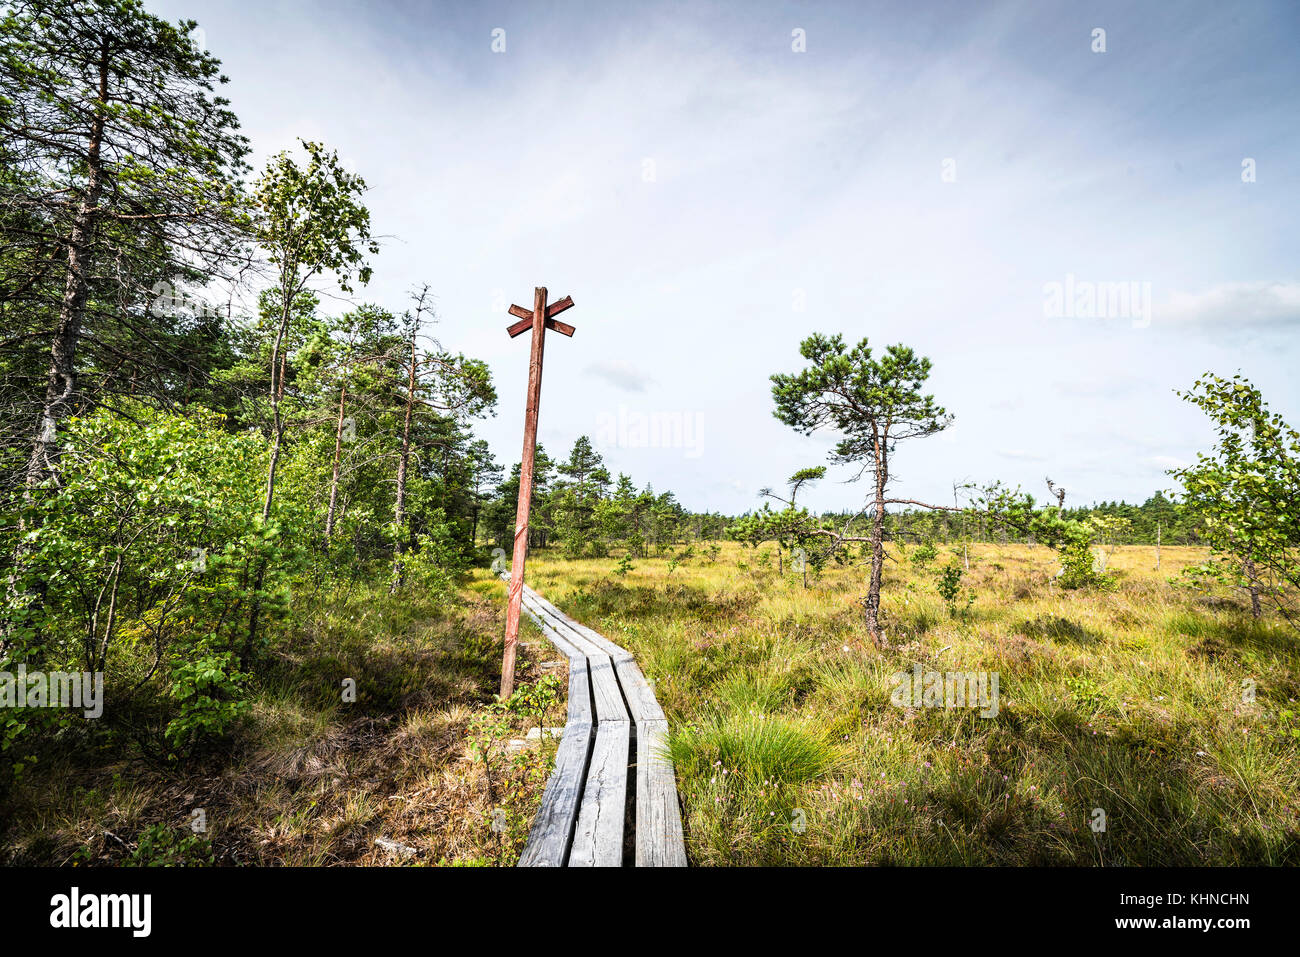 Long wooden nature trail going through a large nature bog with trees and grass and a large red post - Stock Image